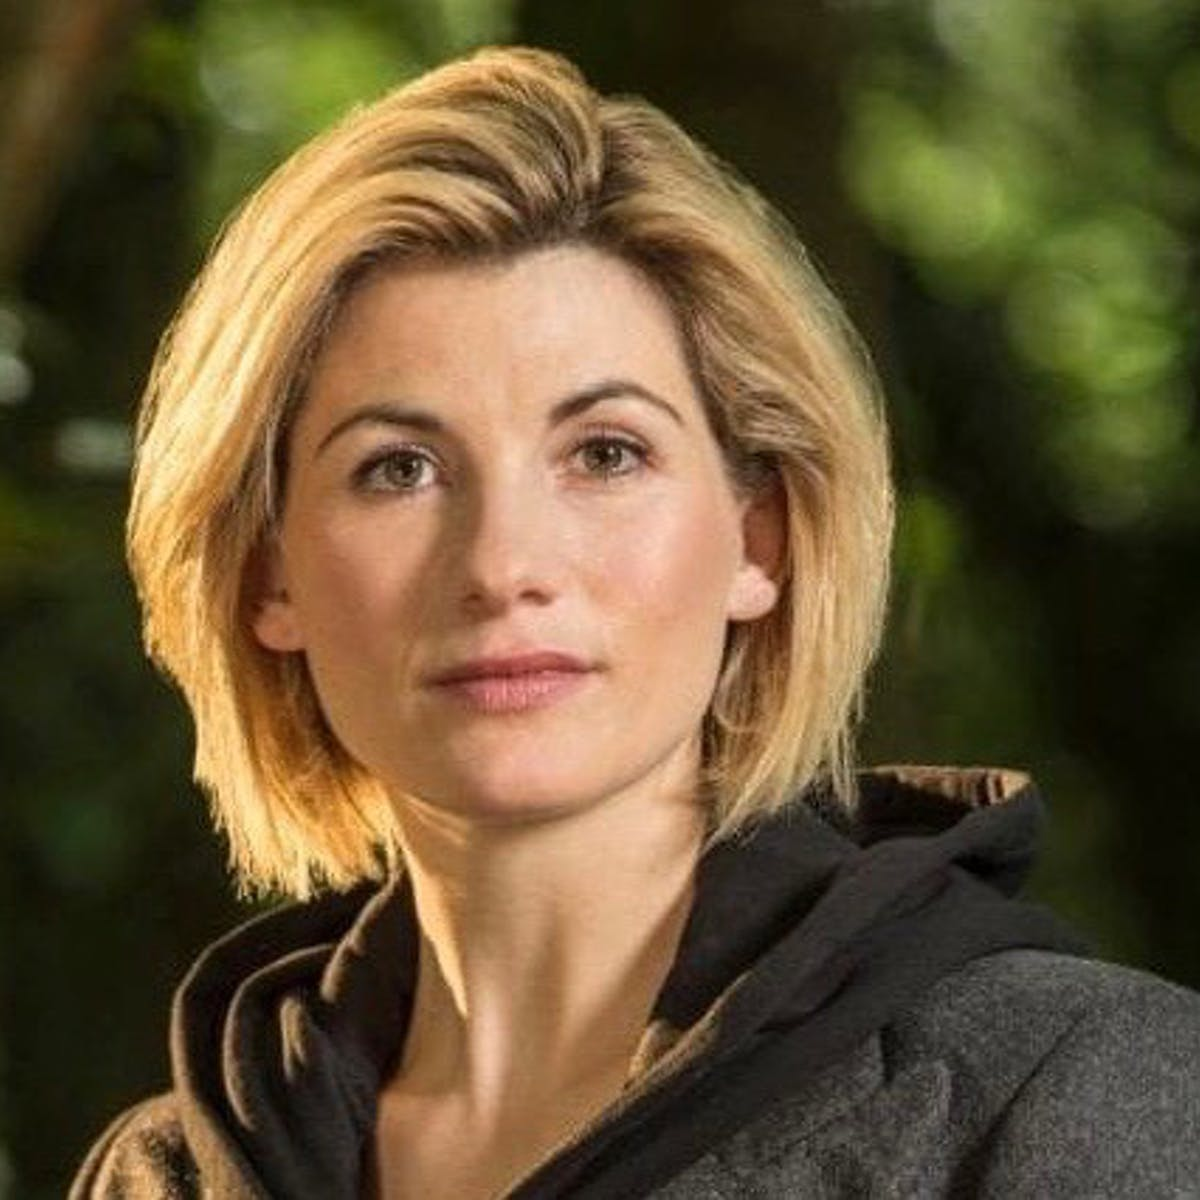 Casting a female Doctor Who wasn't so bold – choosing